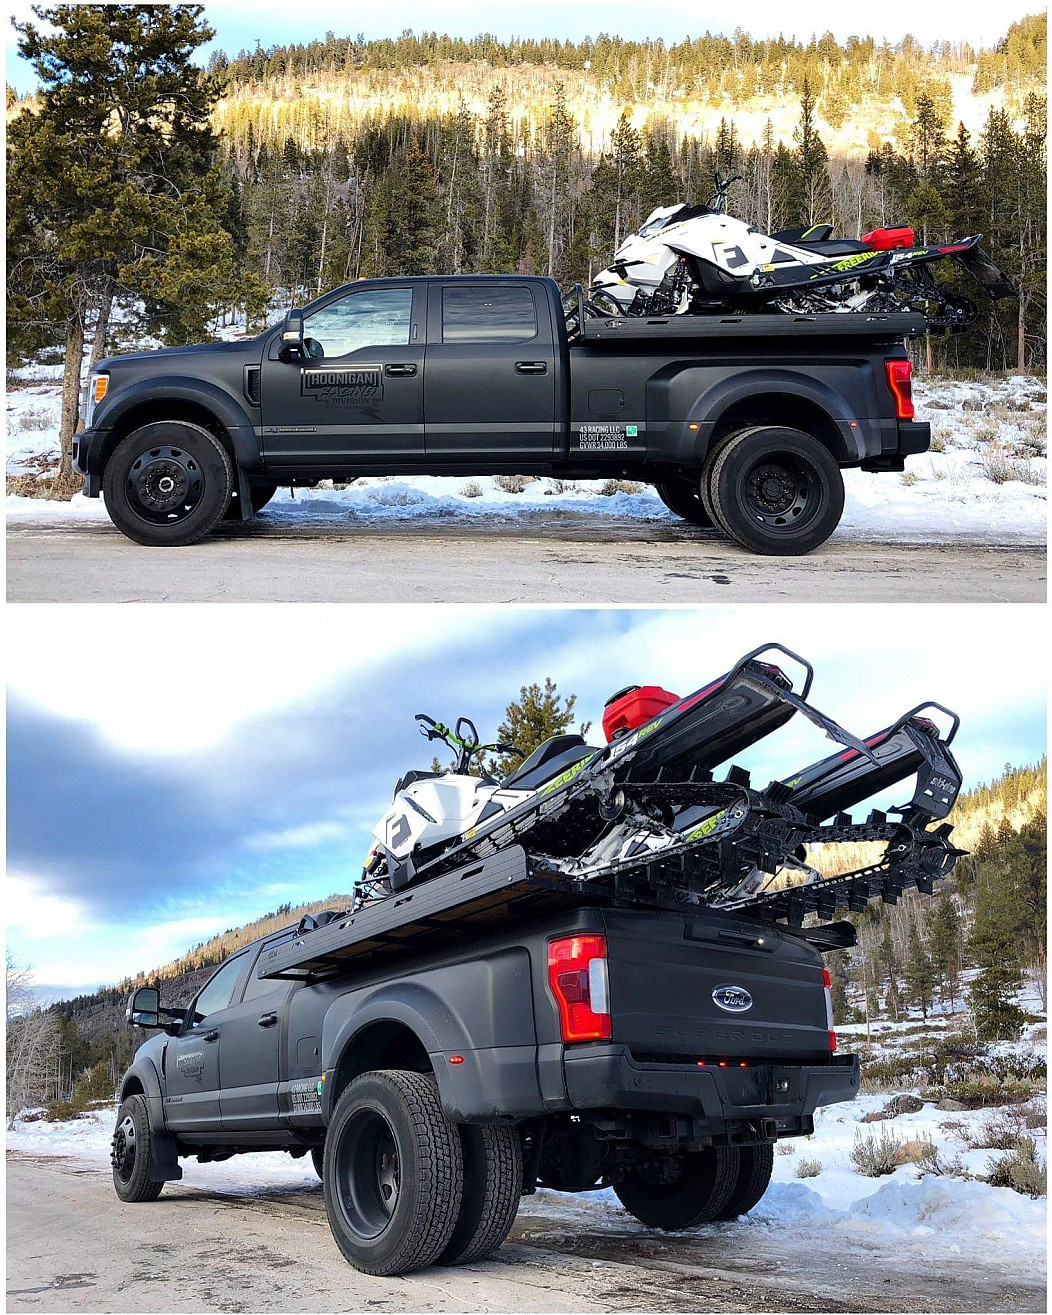 28 - Hoonigan Racing snowmobile atop a Ford F-450